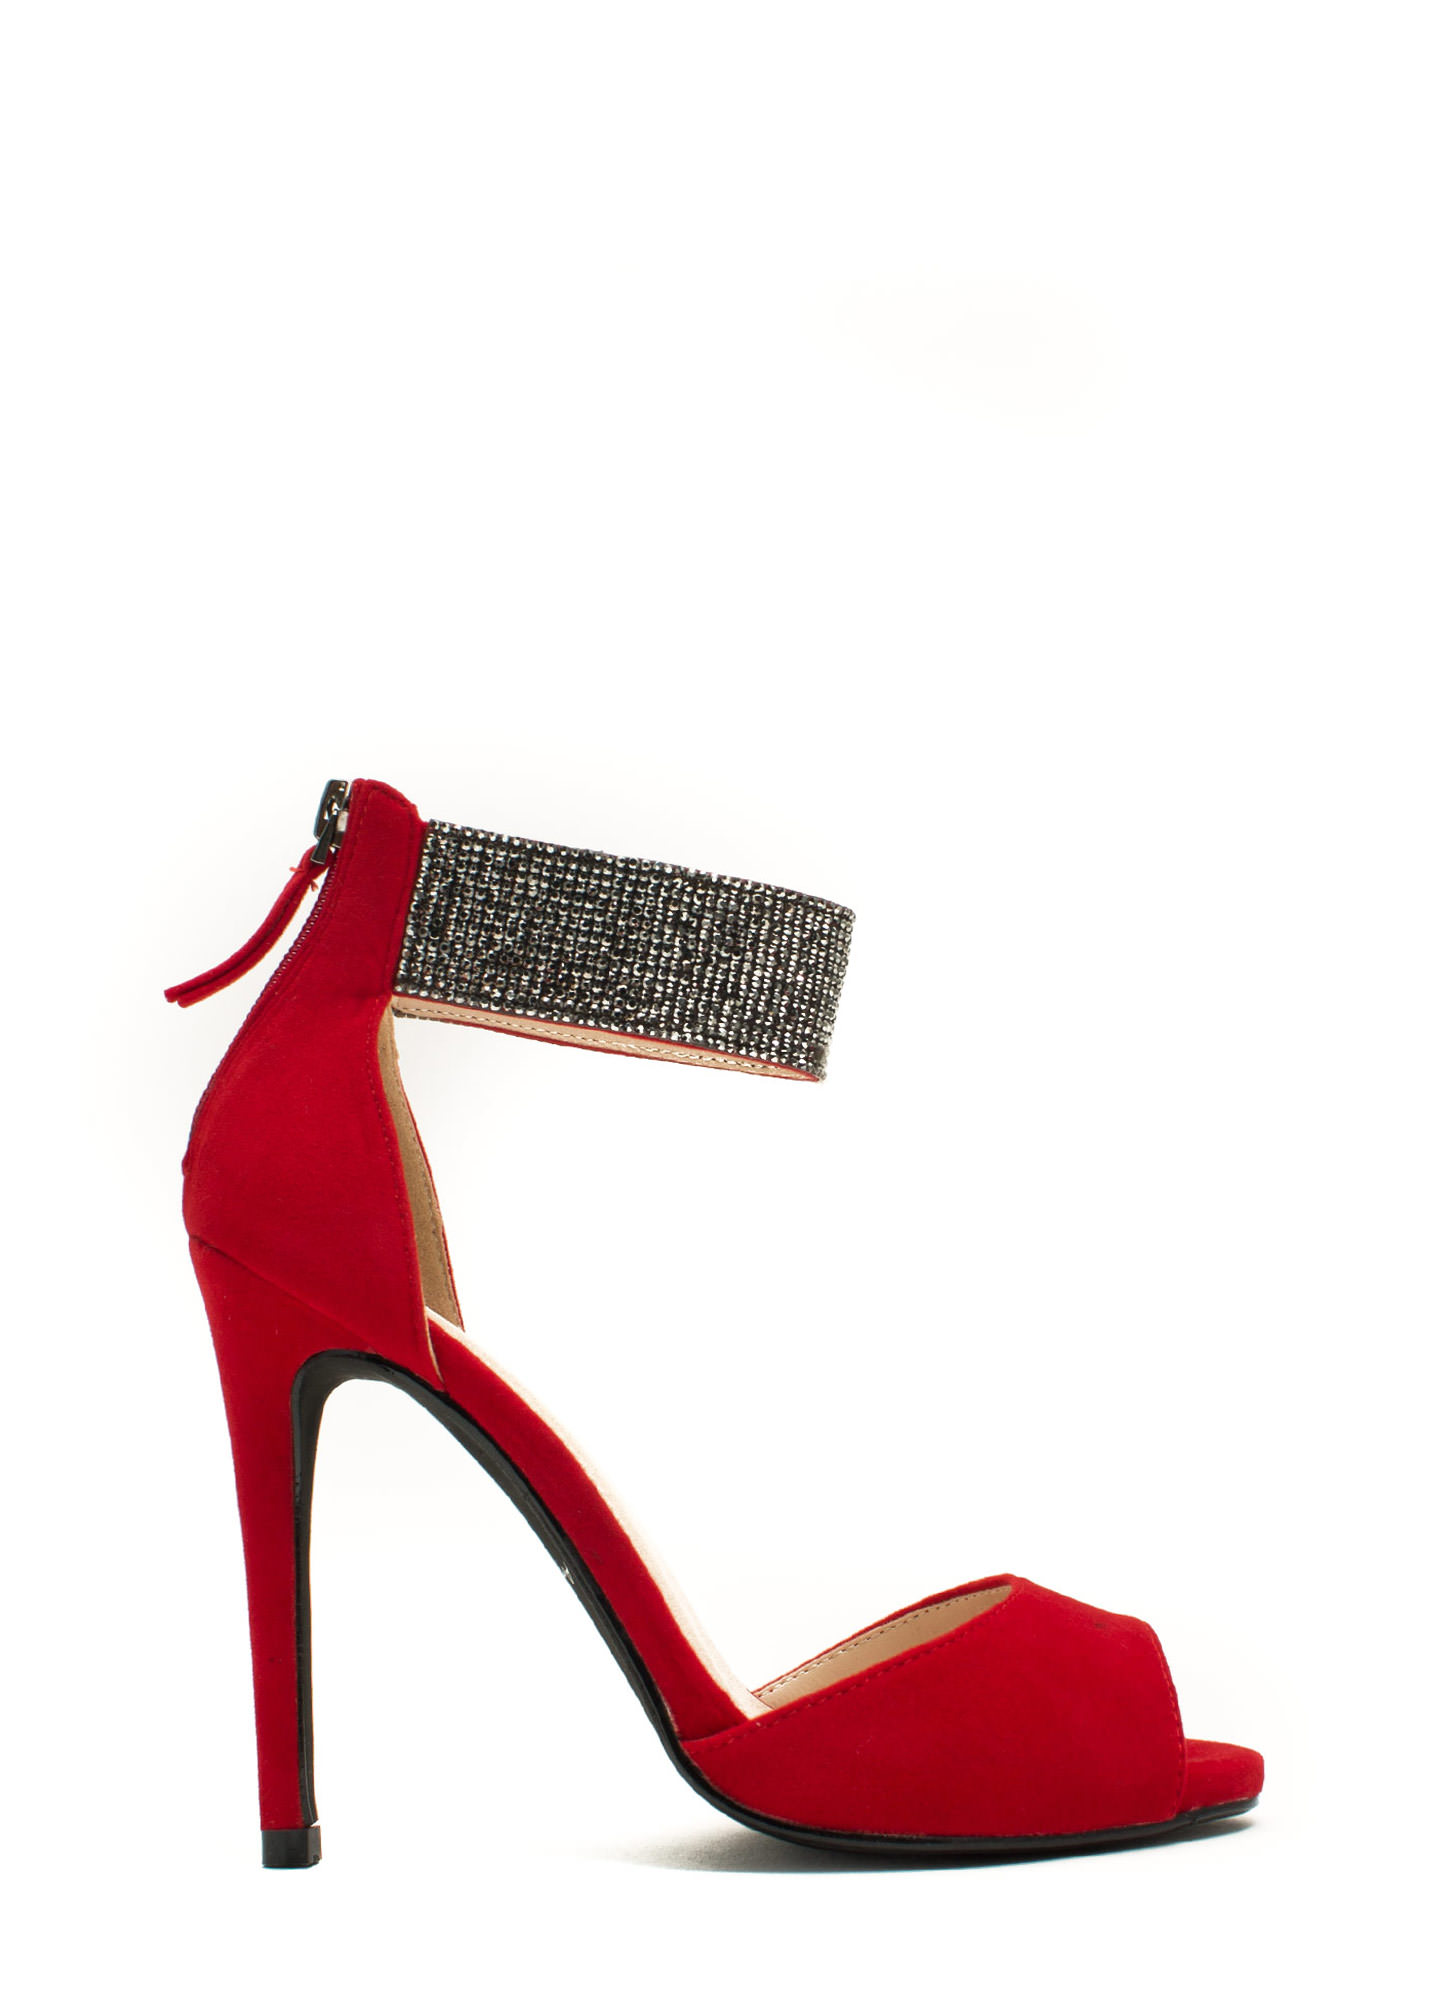 Embellished Cuff D'Orsay Heels RED (Final Sale)